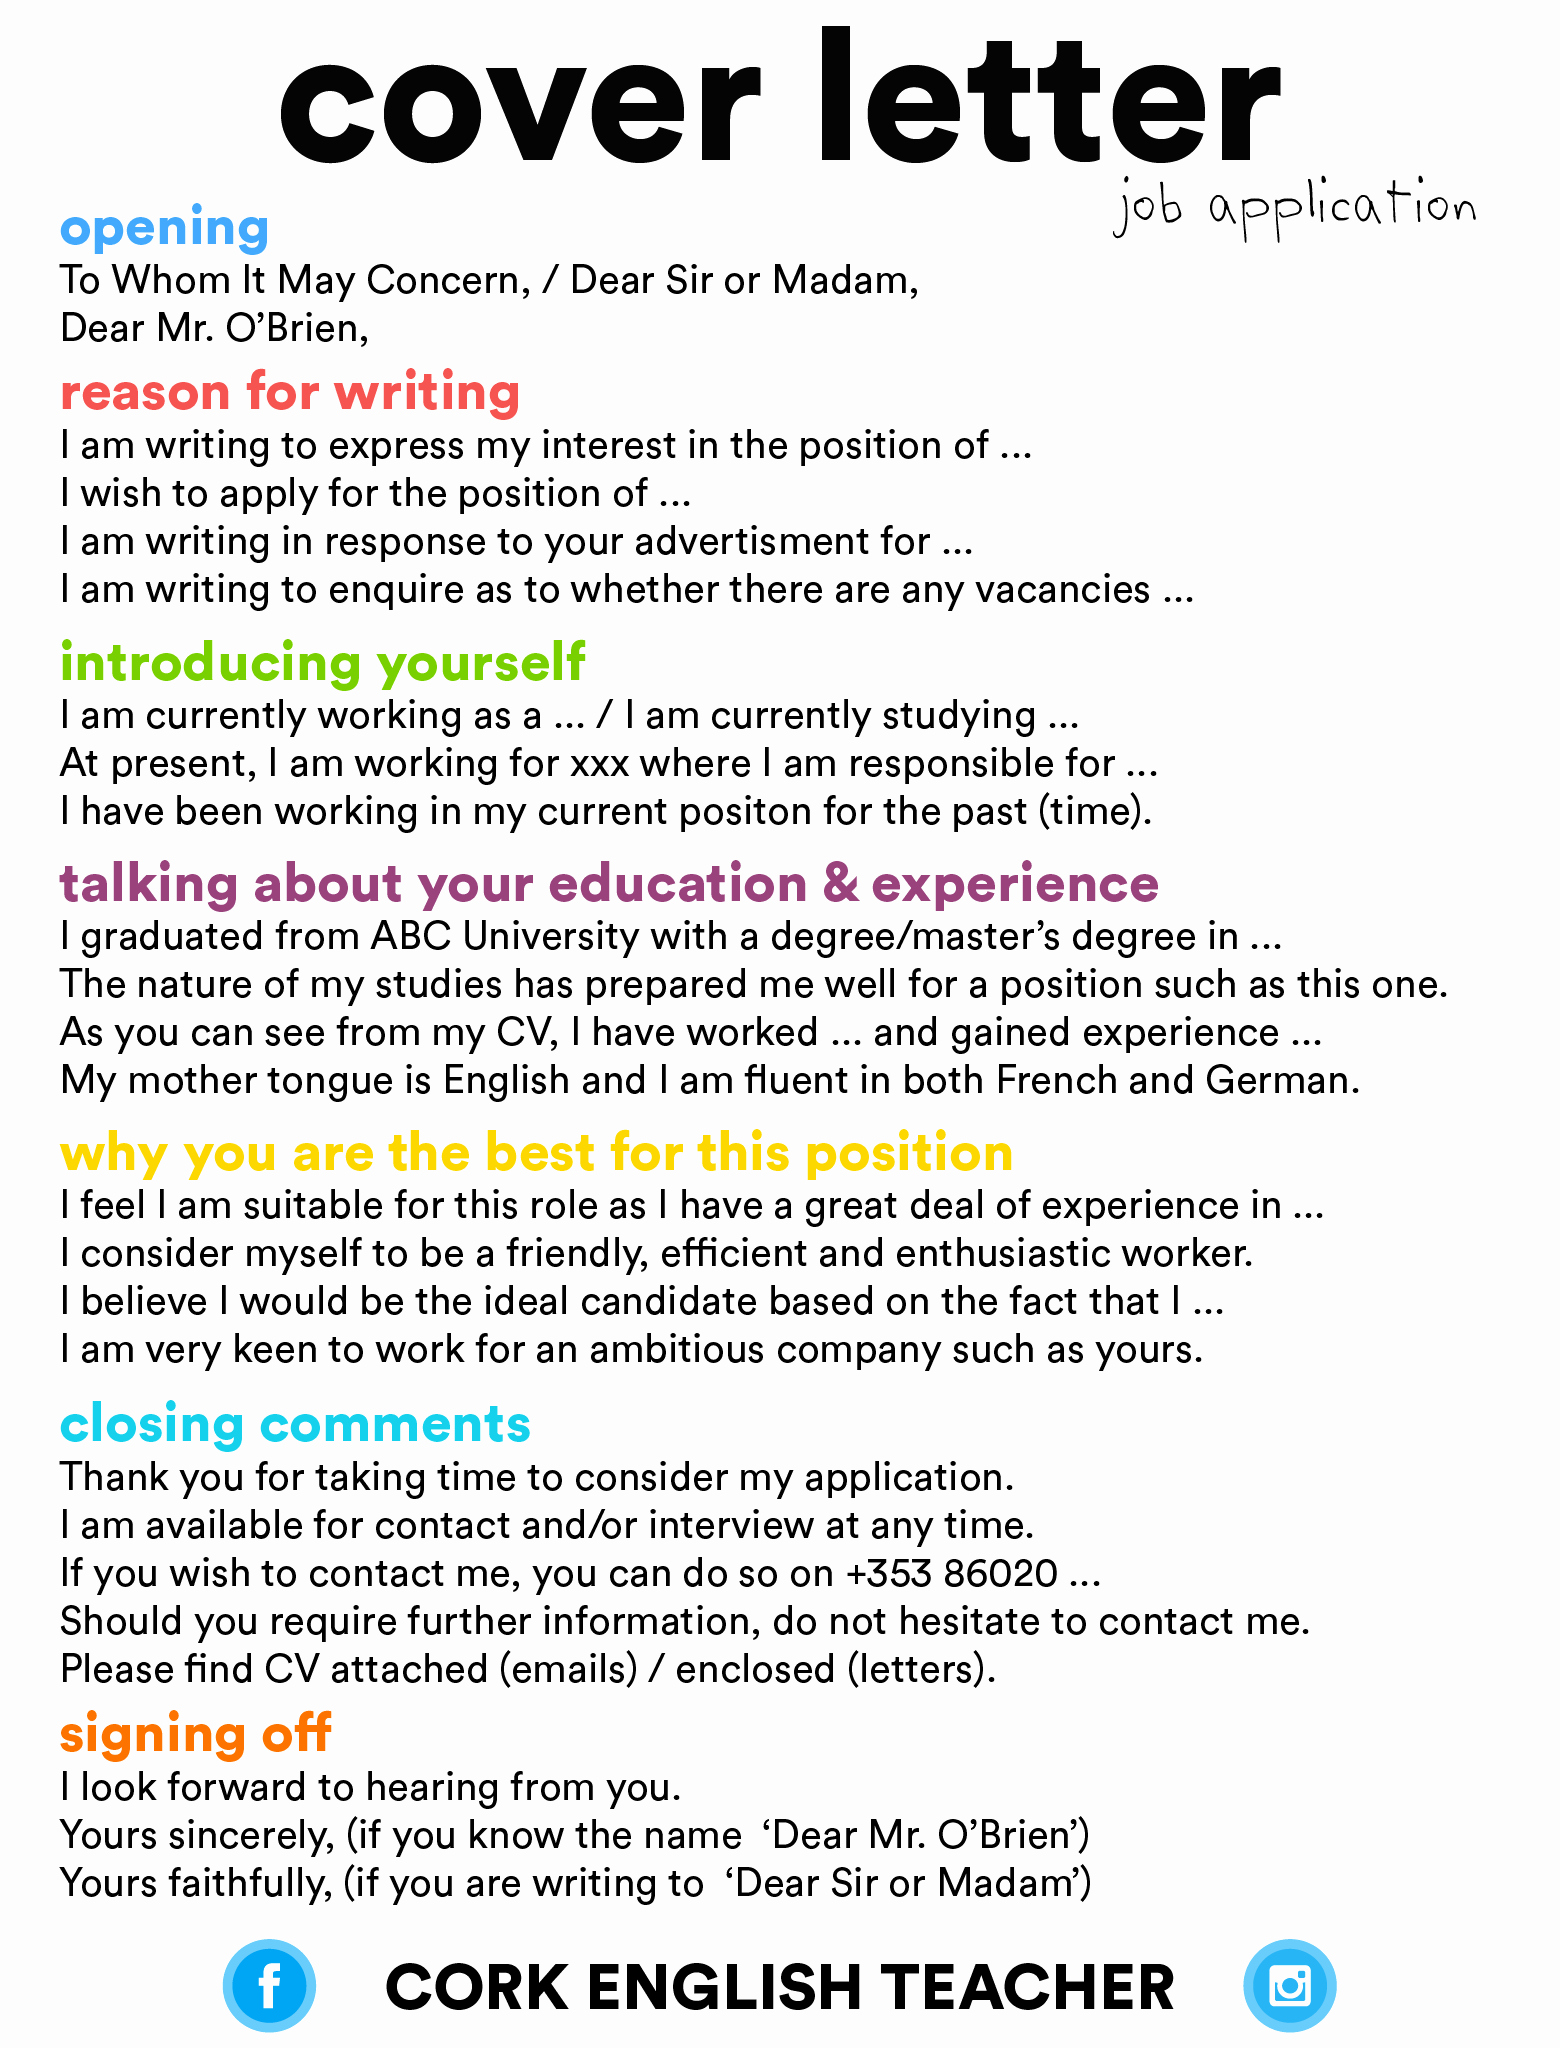 Letter Of Introduction Vs Cover Letter Best Of Cover Letter Job Application Resume